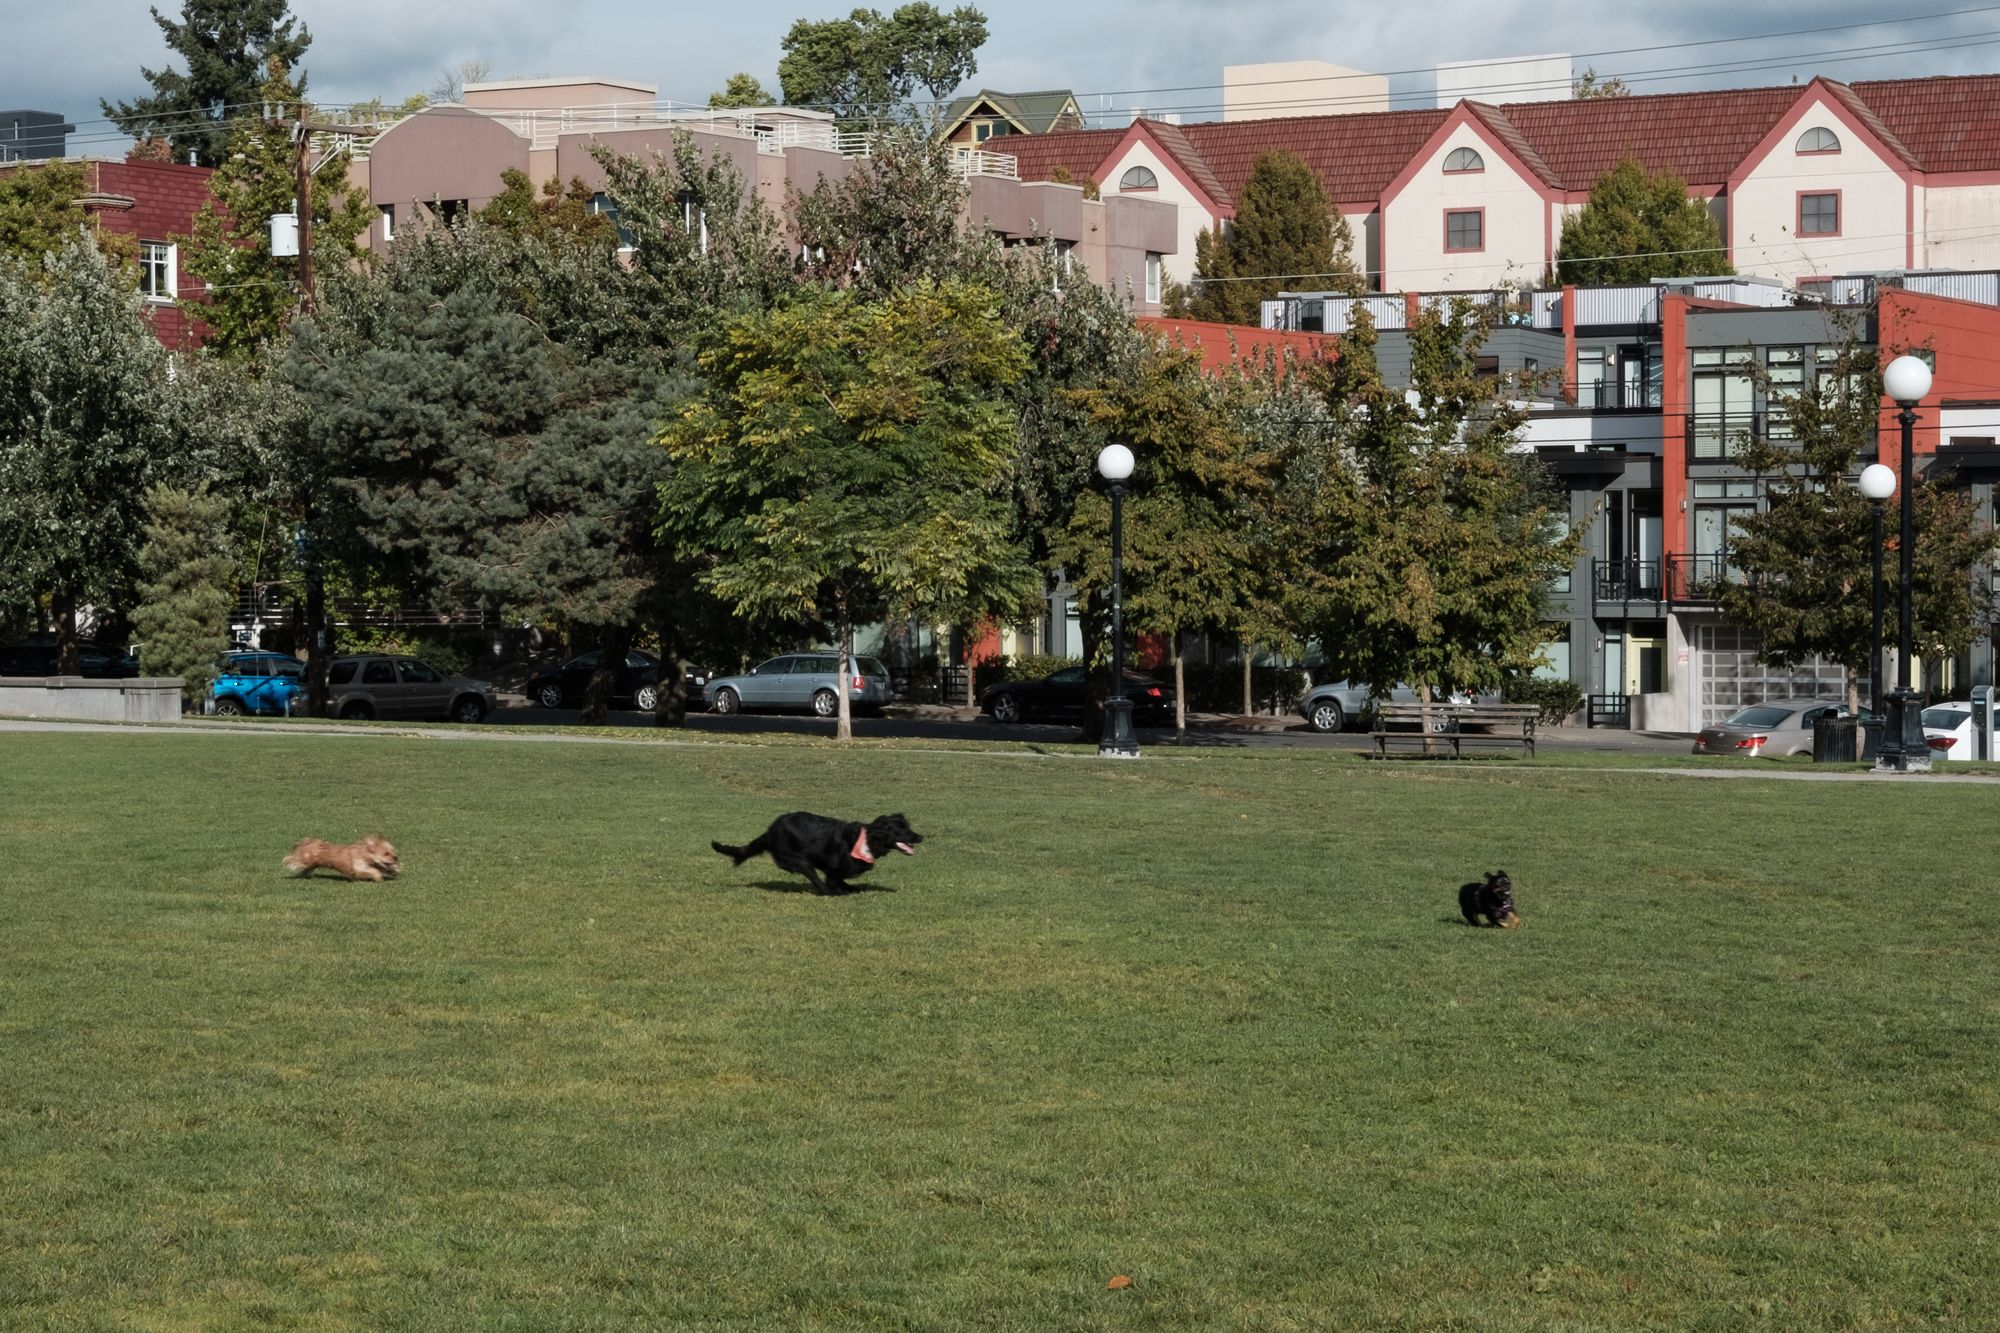 Dogs chase one another in Cal Anderson Park Seattle